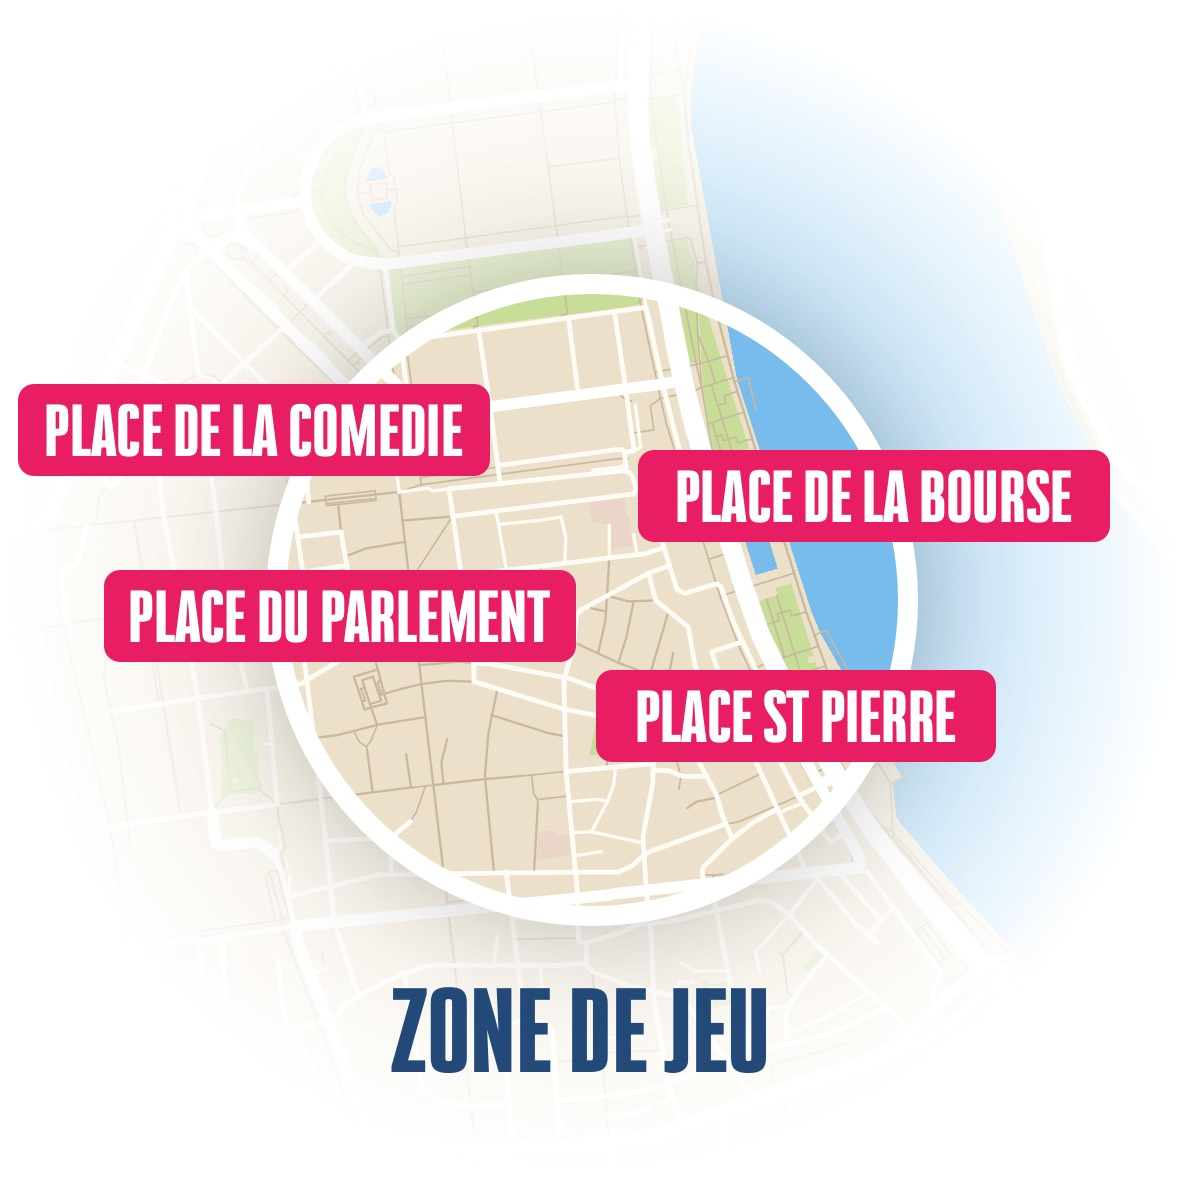 zone de jeu - Bordeau challenge - HomeExchange